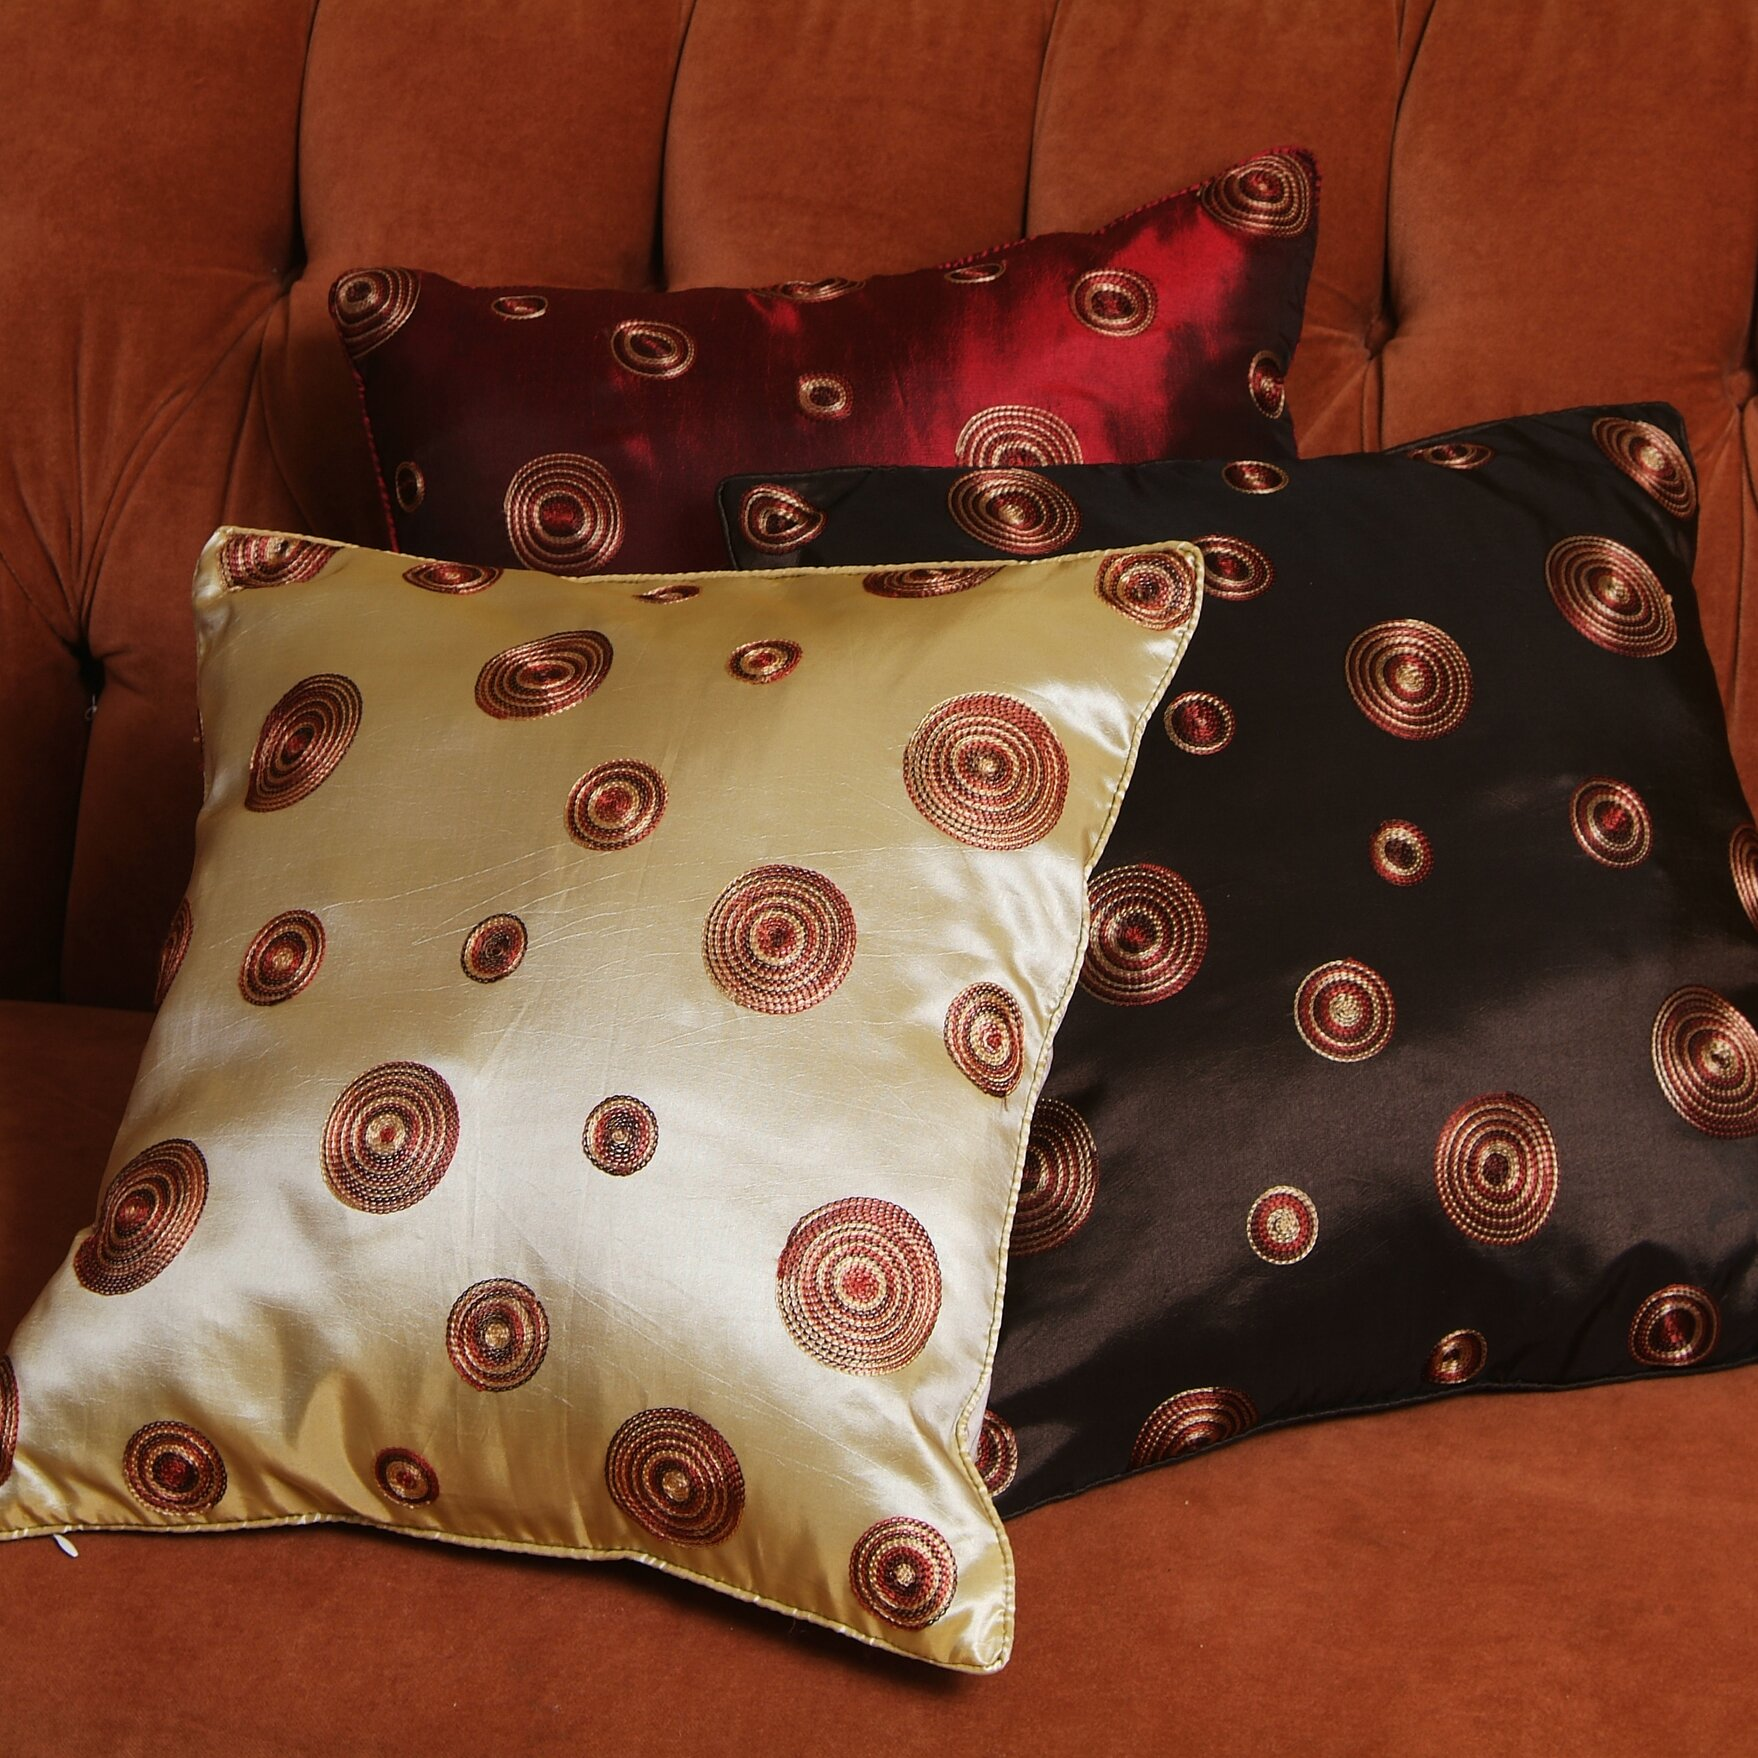 Circle Design Throw Pillows : Charlton Home Schneider Silky Circle Design Throw Pillow & Reviews Wayfair.ca